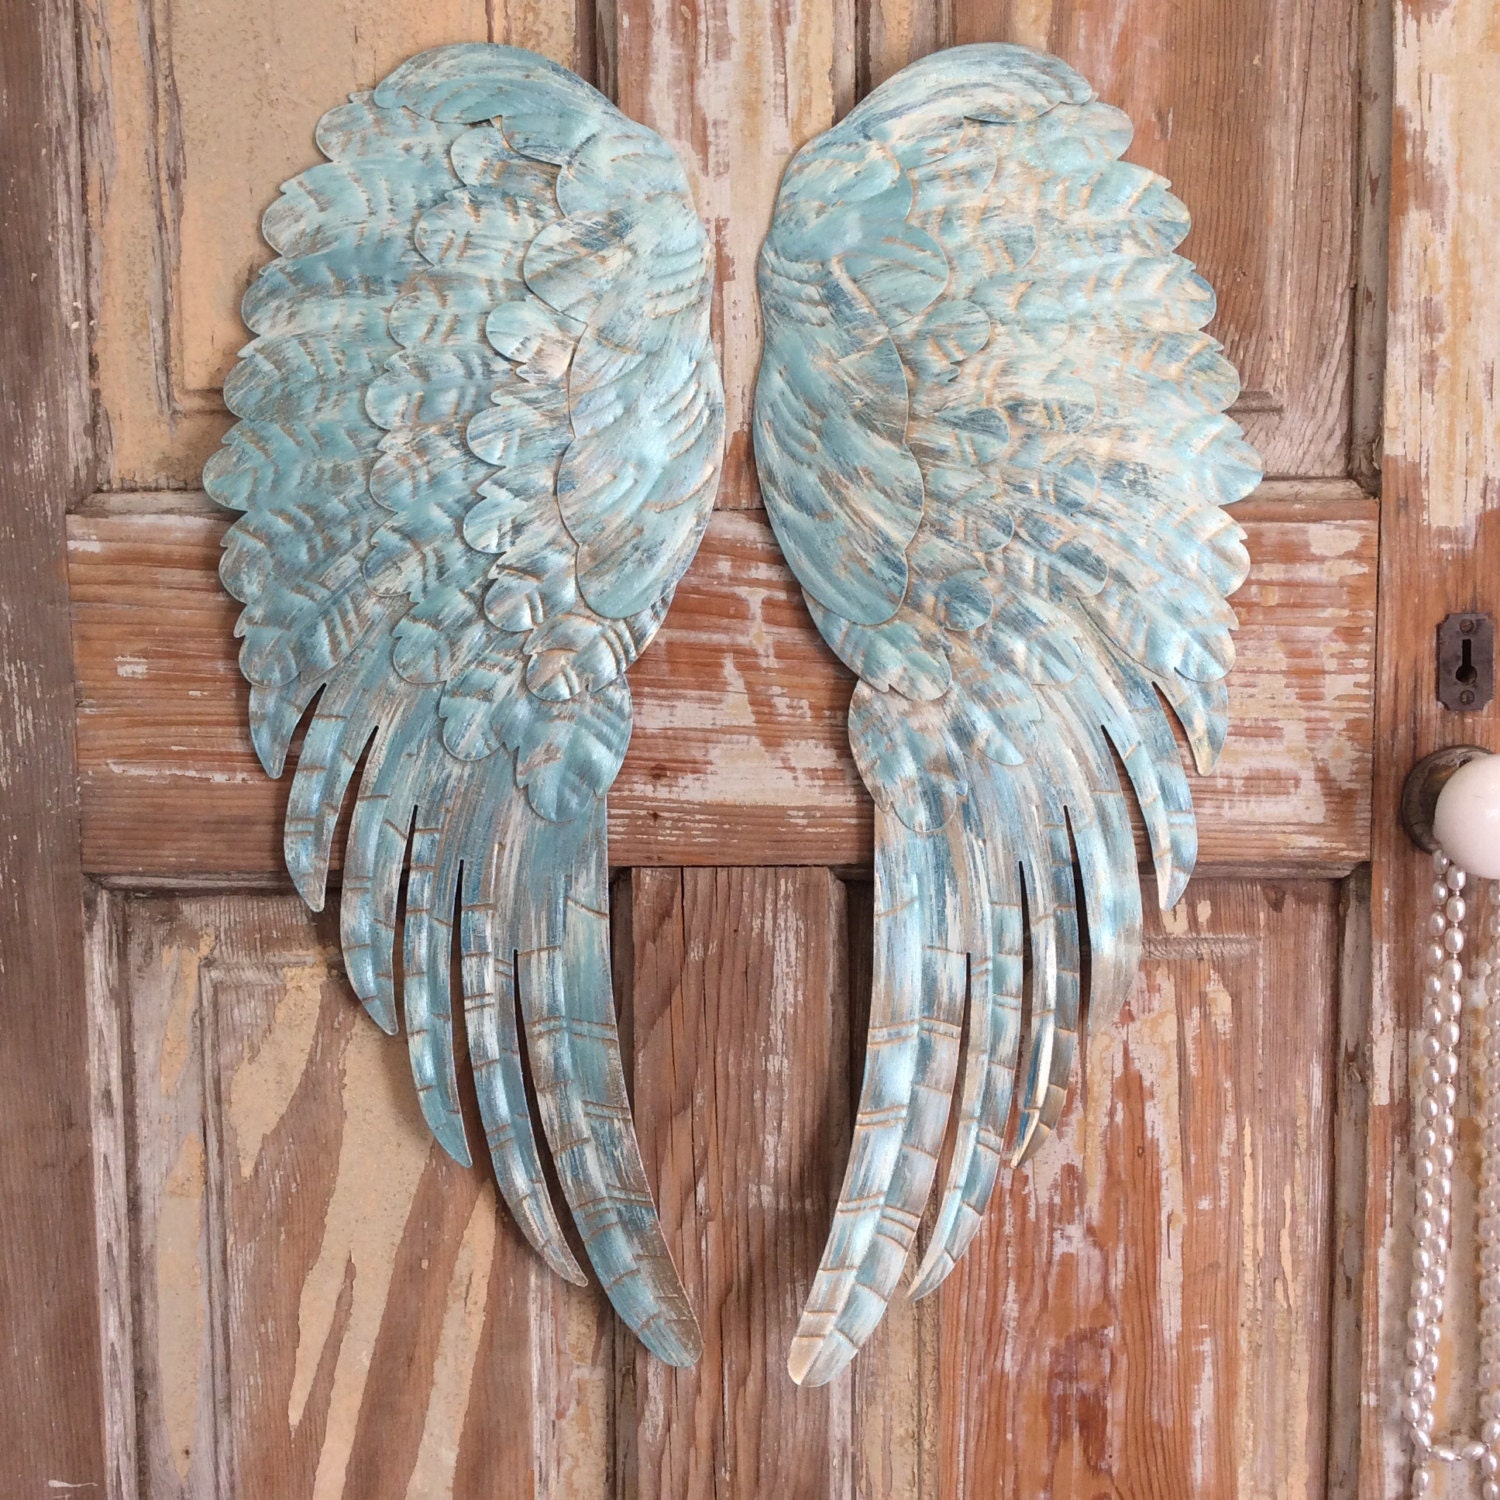 Large Metal Angel Wings Wall Decor Distressed Turquoise